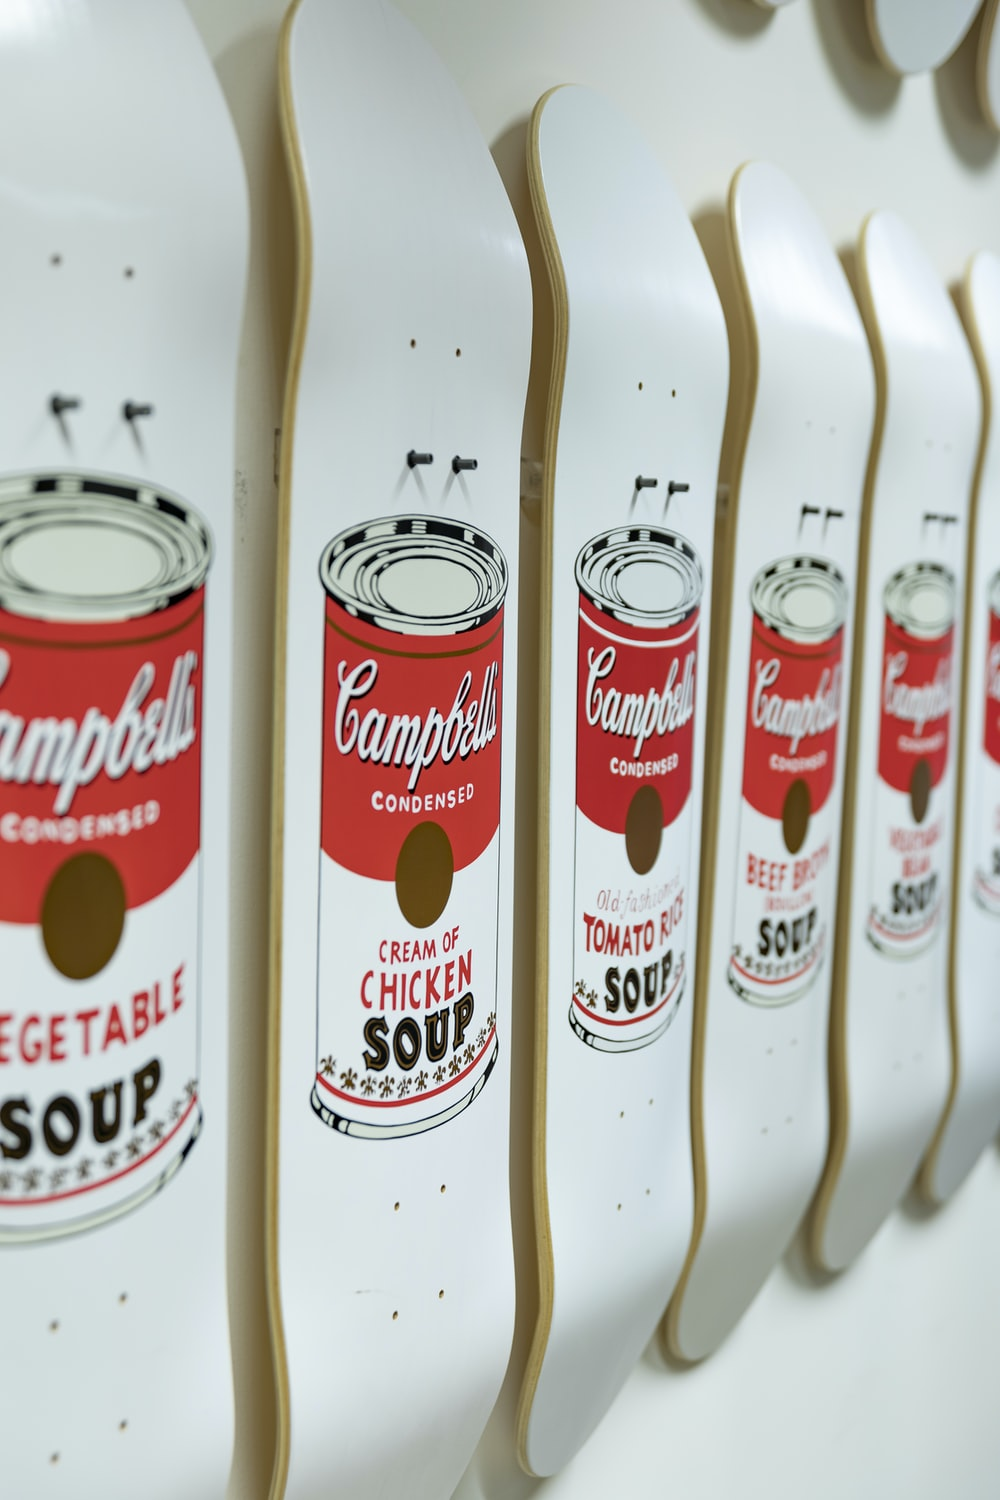 white-and-red Campbells soup can graphic skateboard deck lot